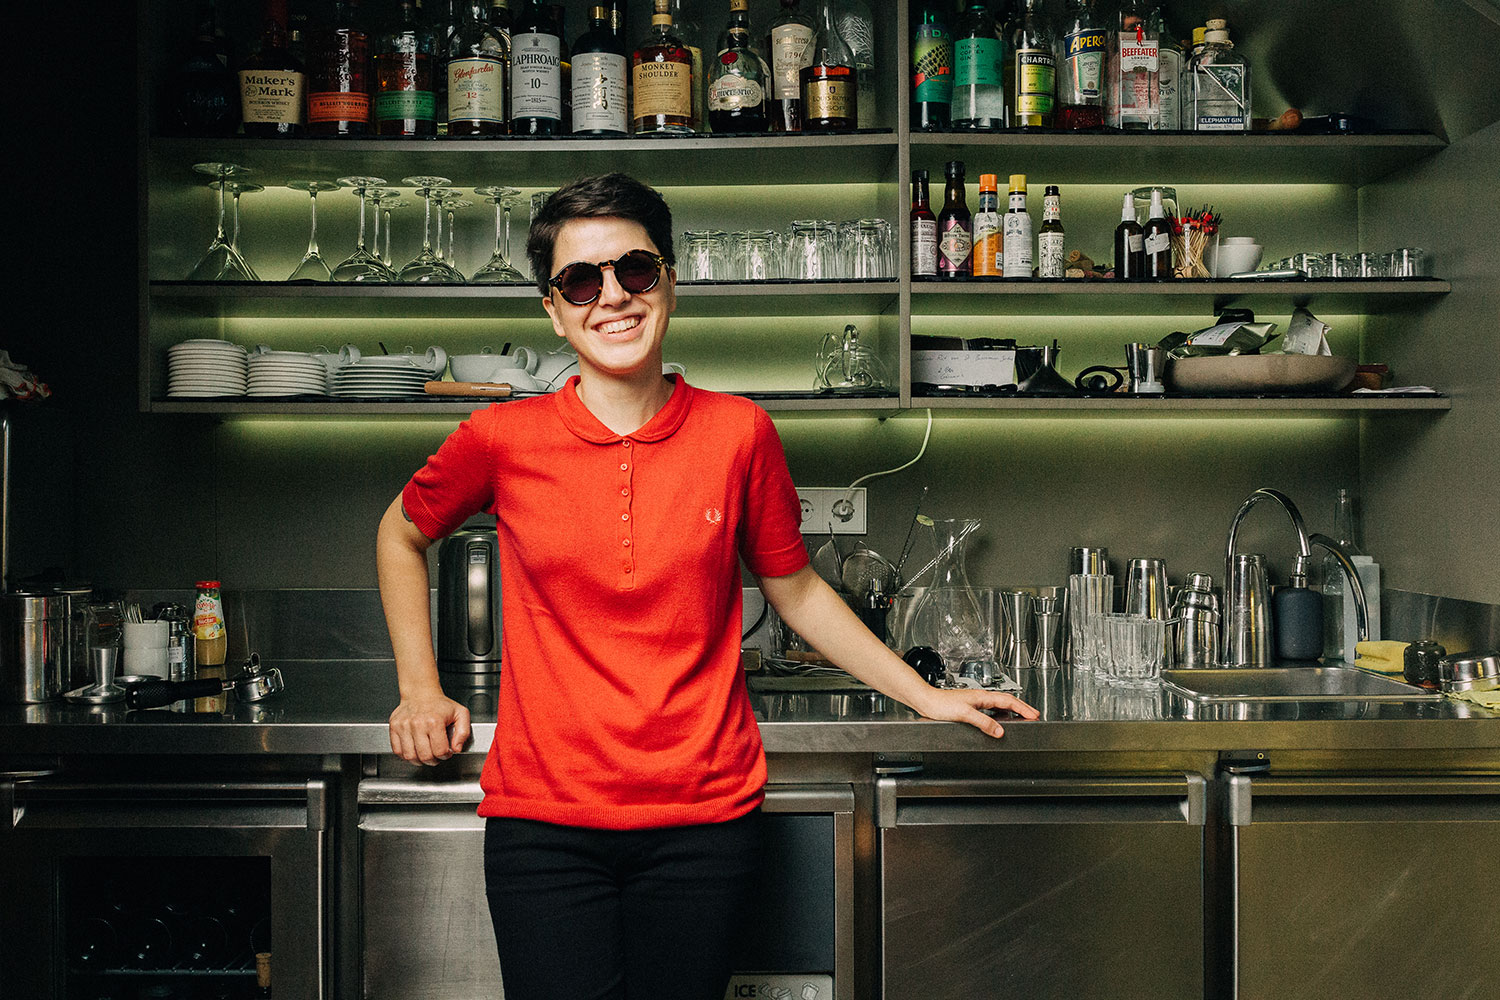 Catarina showing us the bar where they make delicious cocktails. She's wearing our Orion tortoise